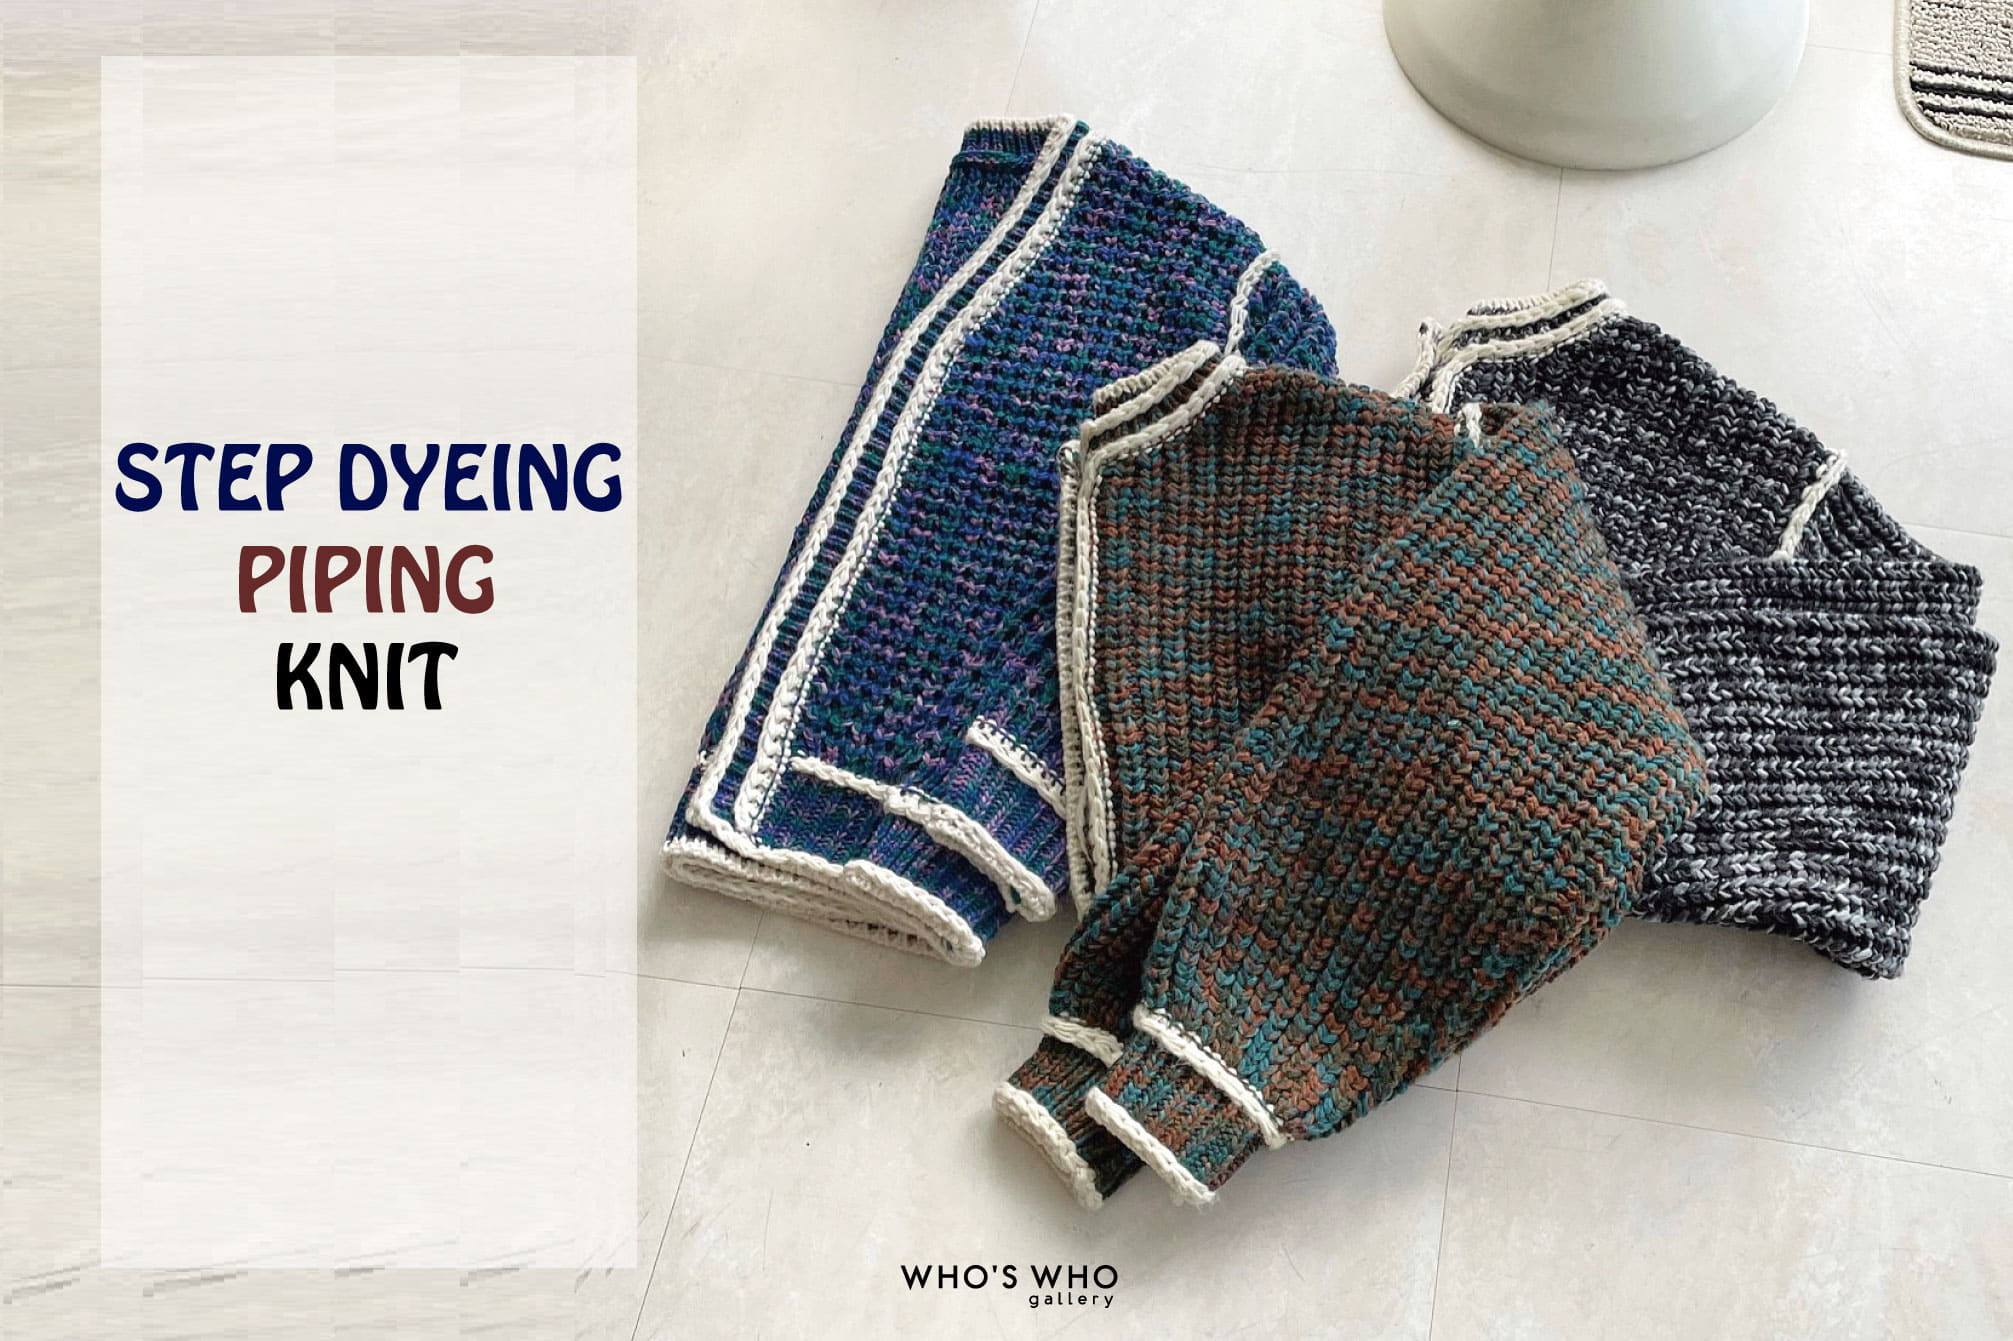 WHO'S WHO gallery 【STEP DYEING PIPING KNIT】